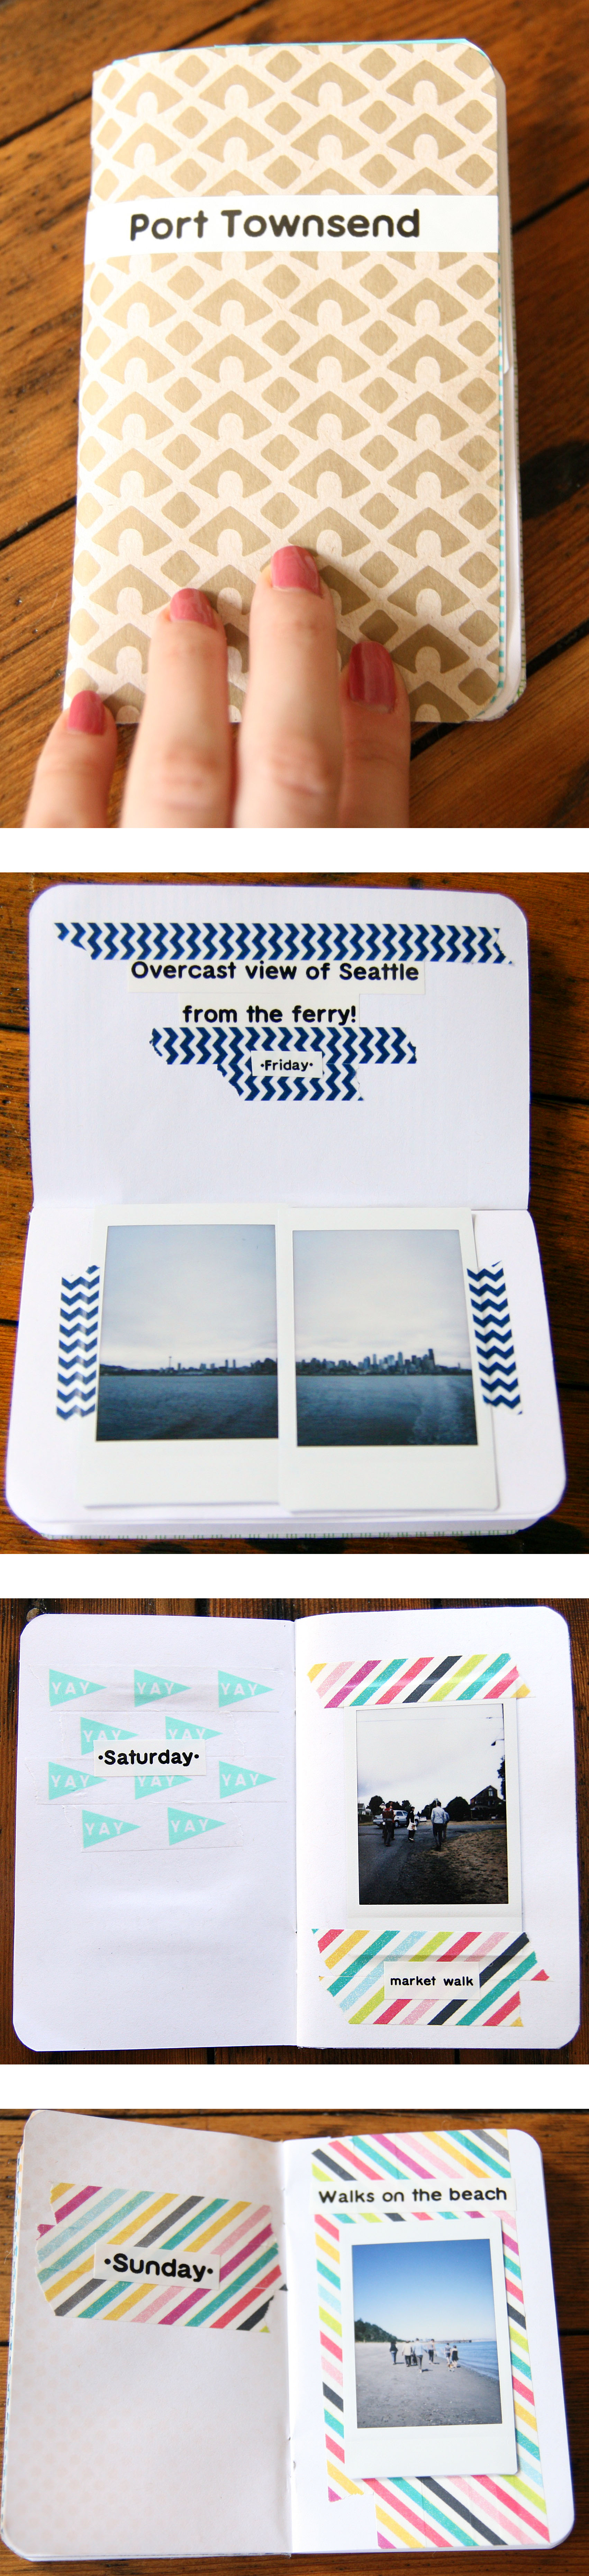 What A Cute Way To Document A Vacation A Handmade Instax Photo